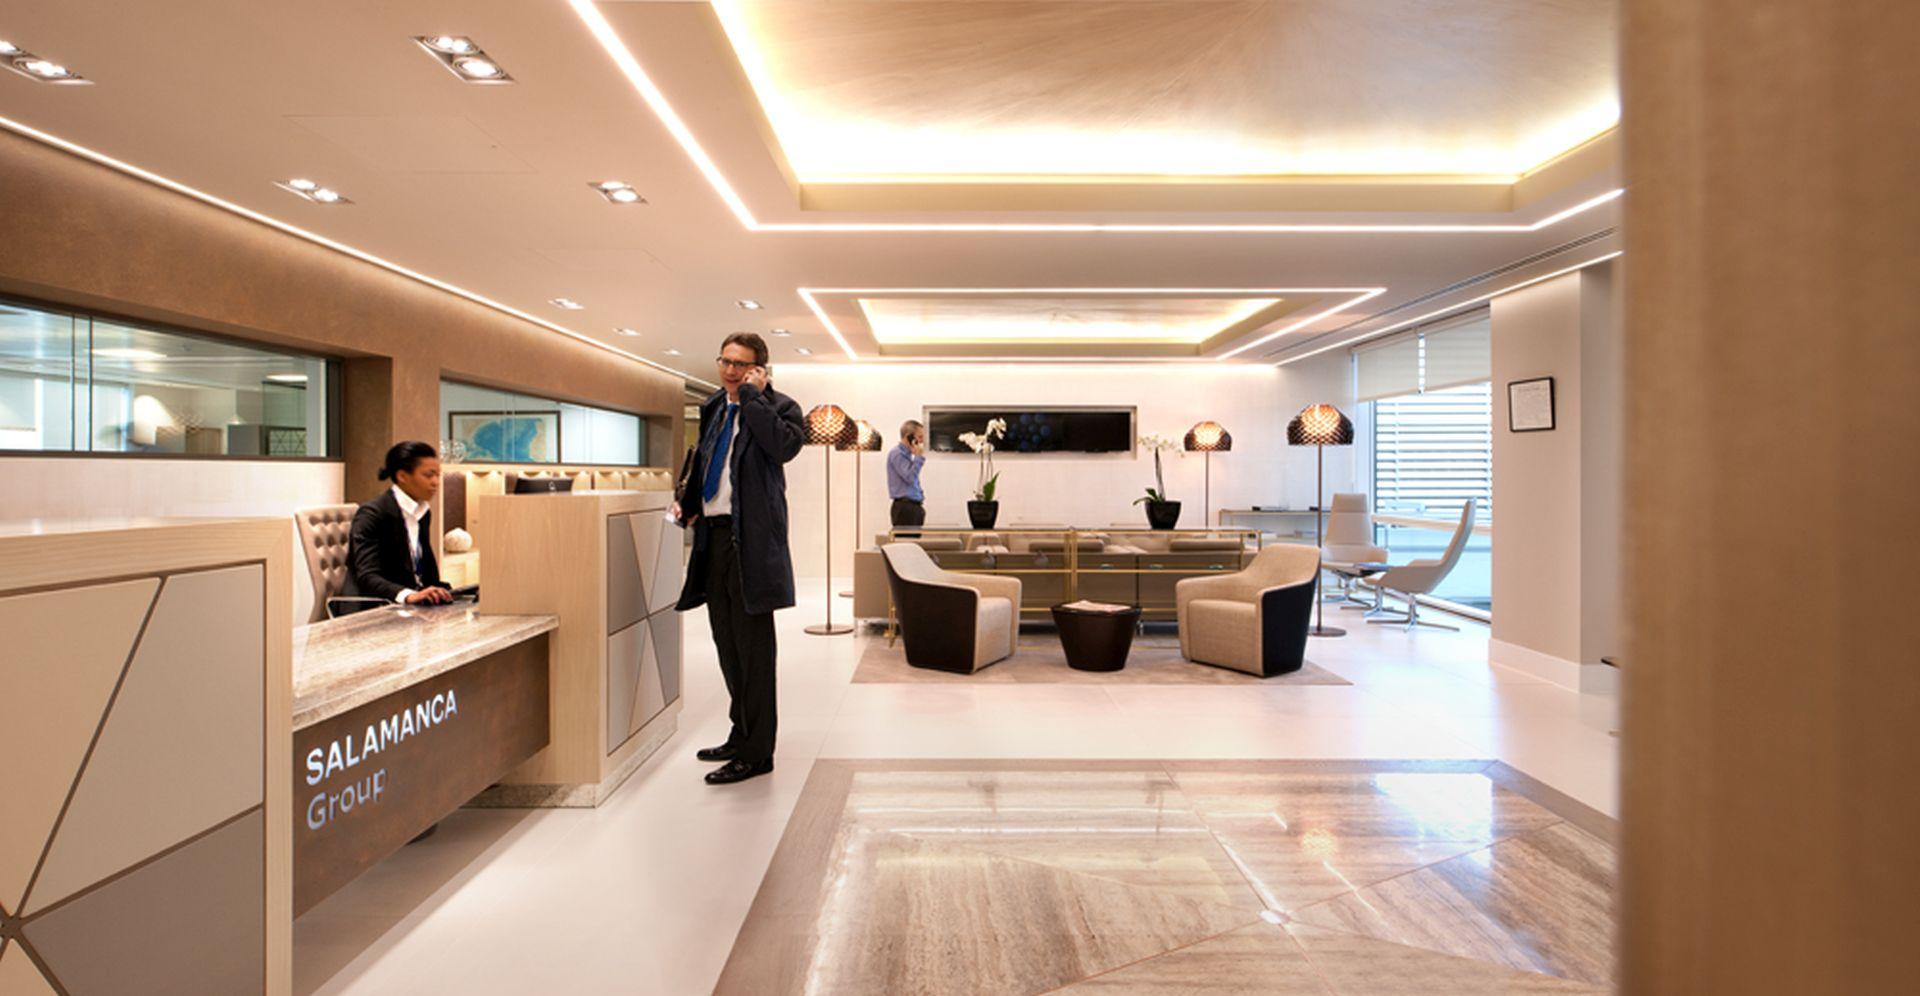 Salamanca Group Reception Case Study Image